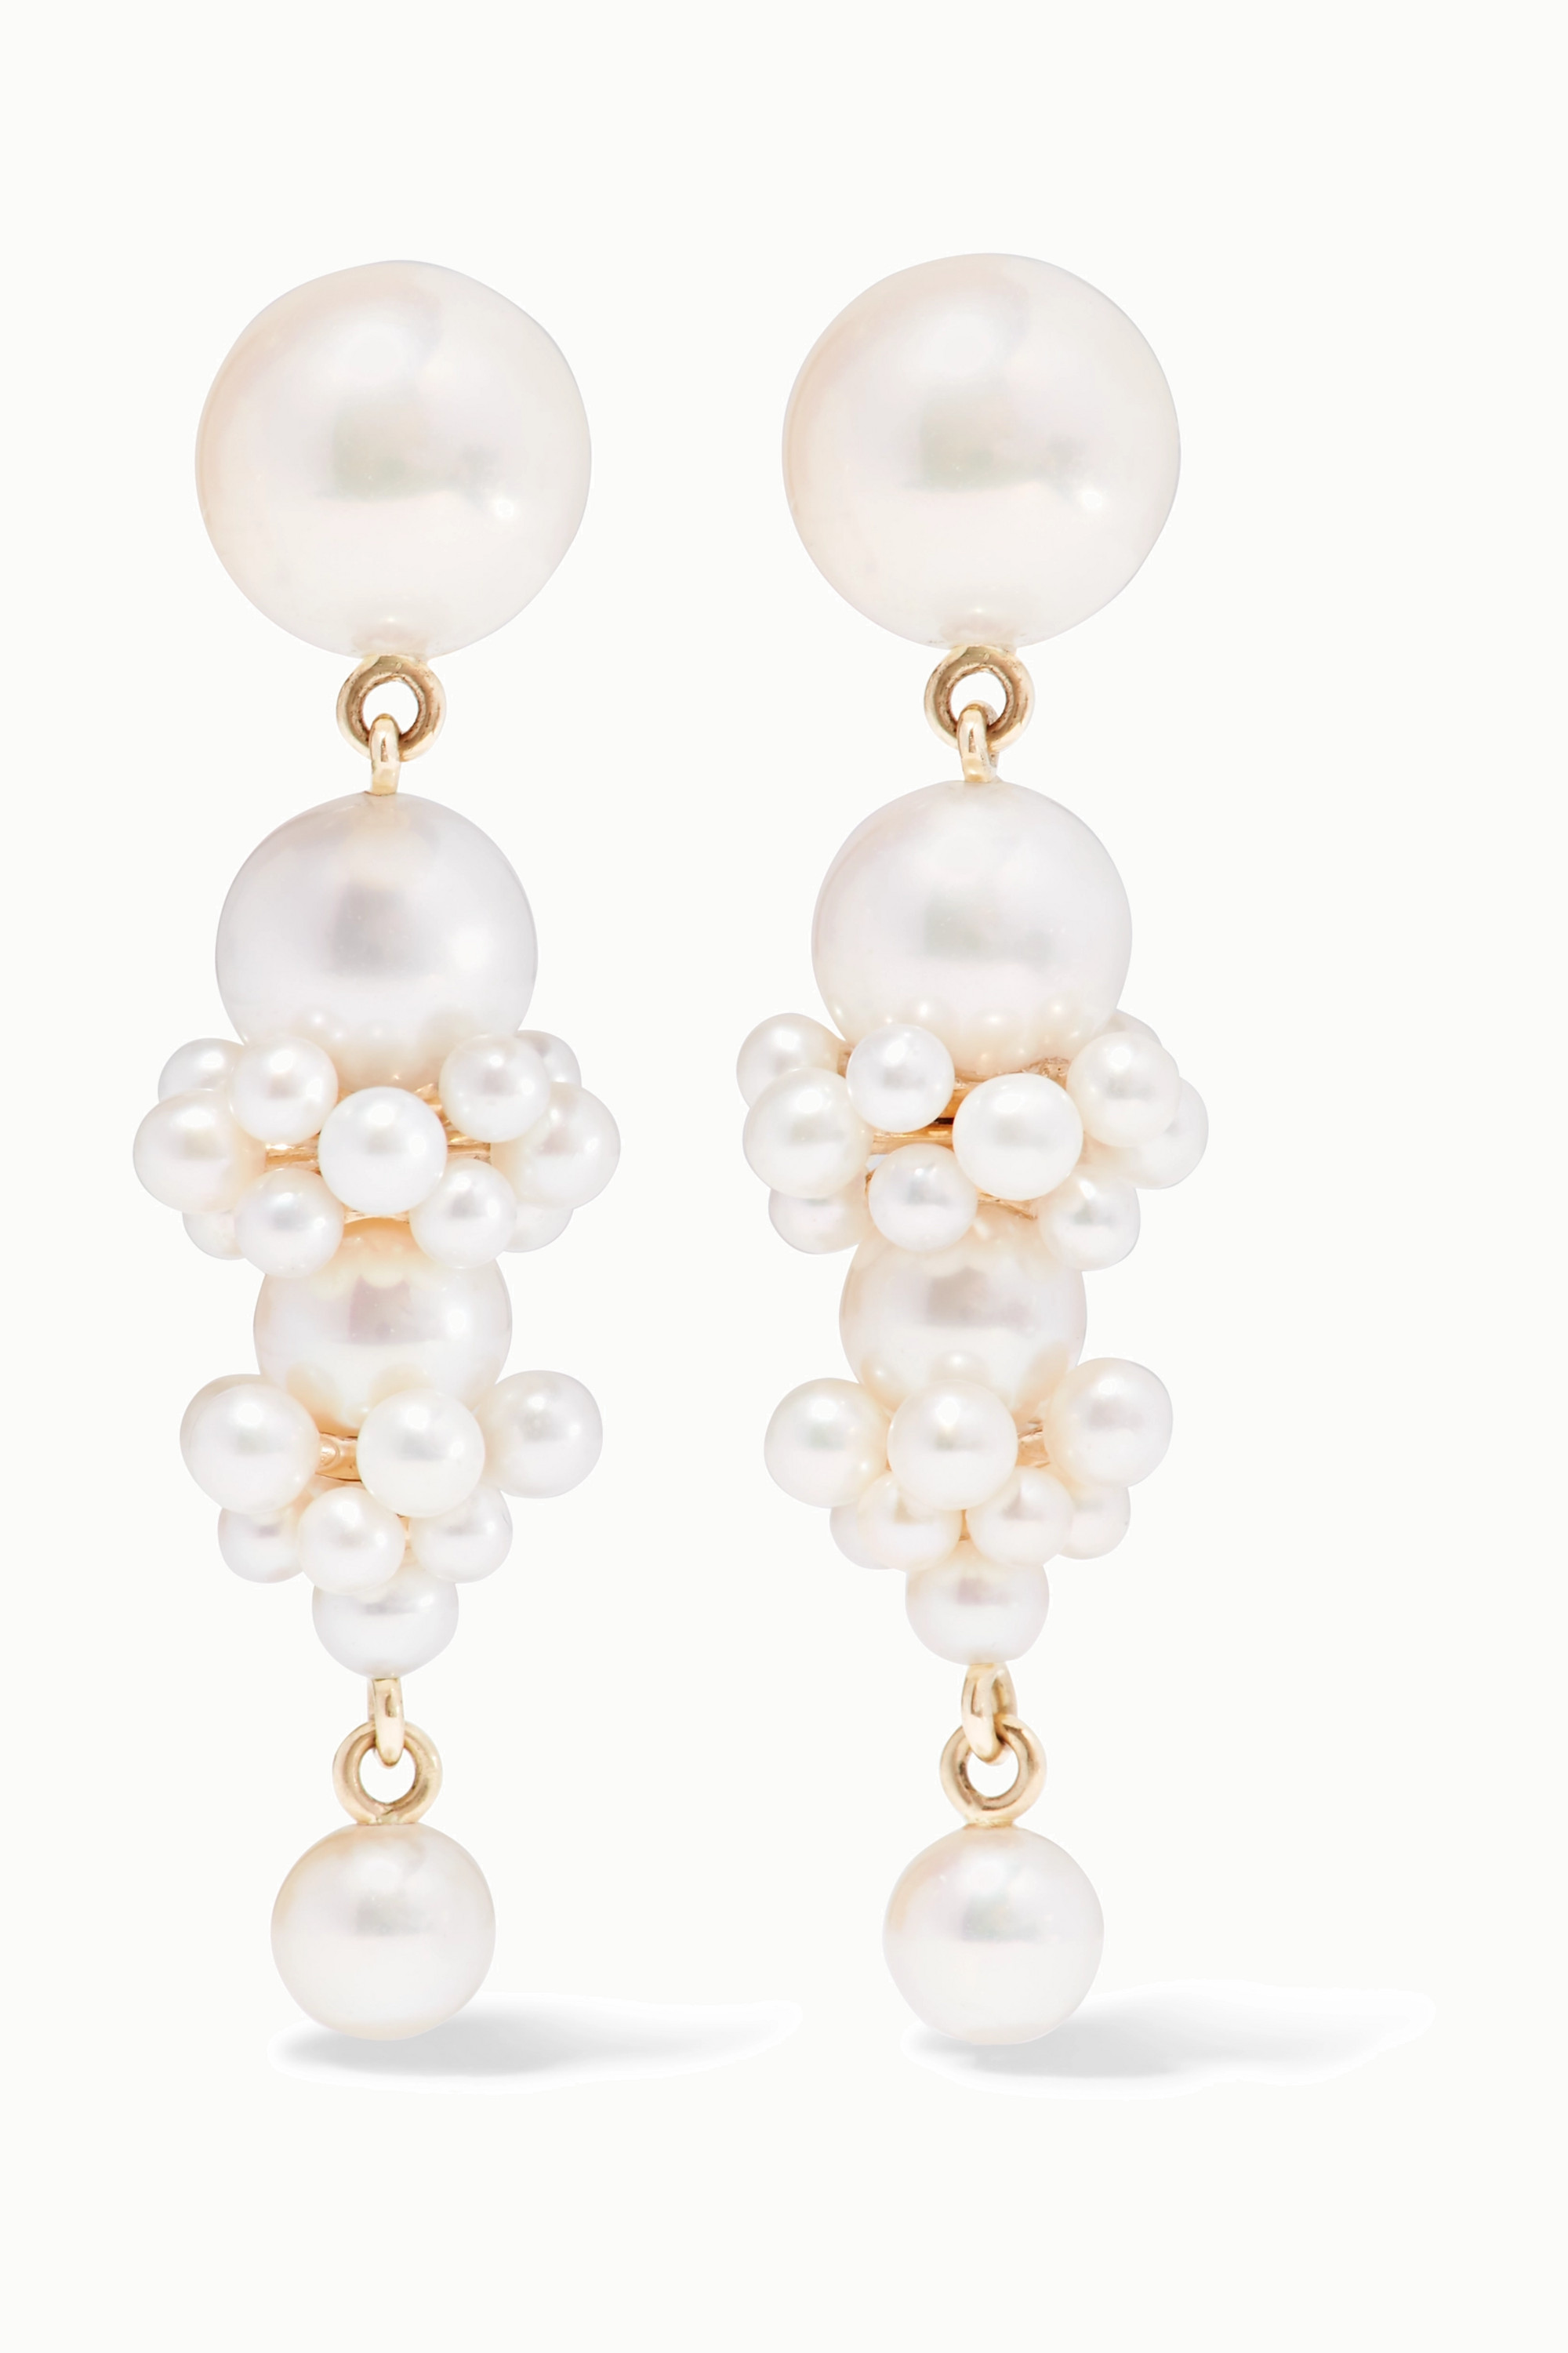 Sophie Bille Brahe + Cecilie Bahnsen Tulip 14-karat gold pearl earrings